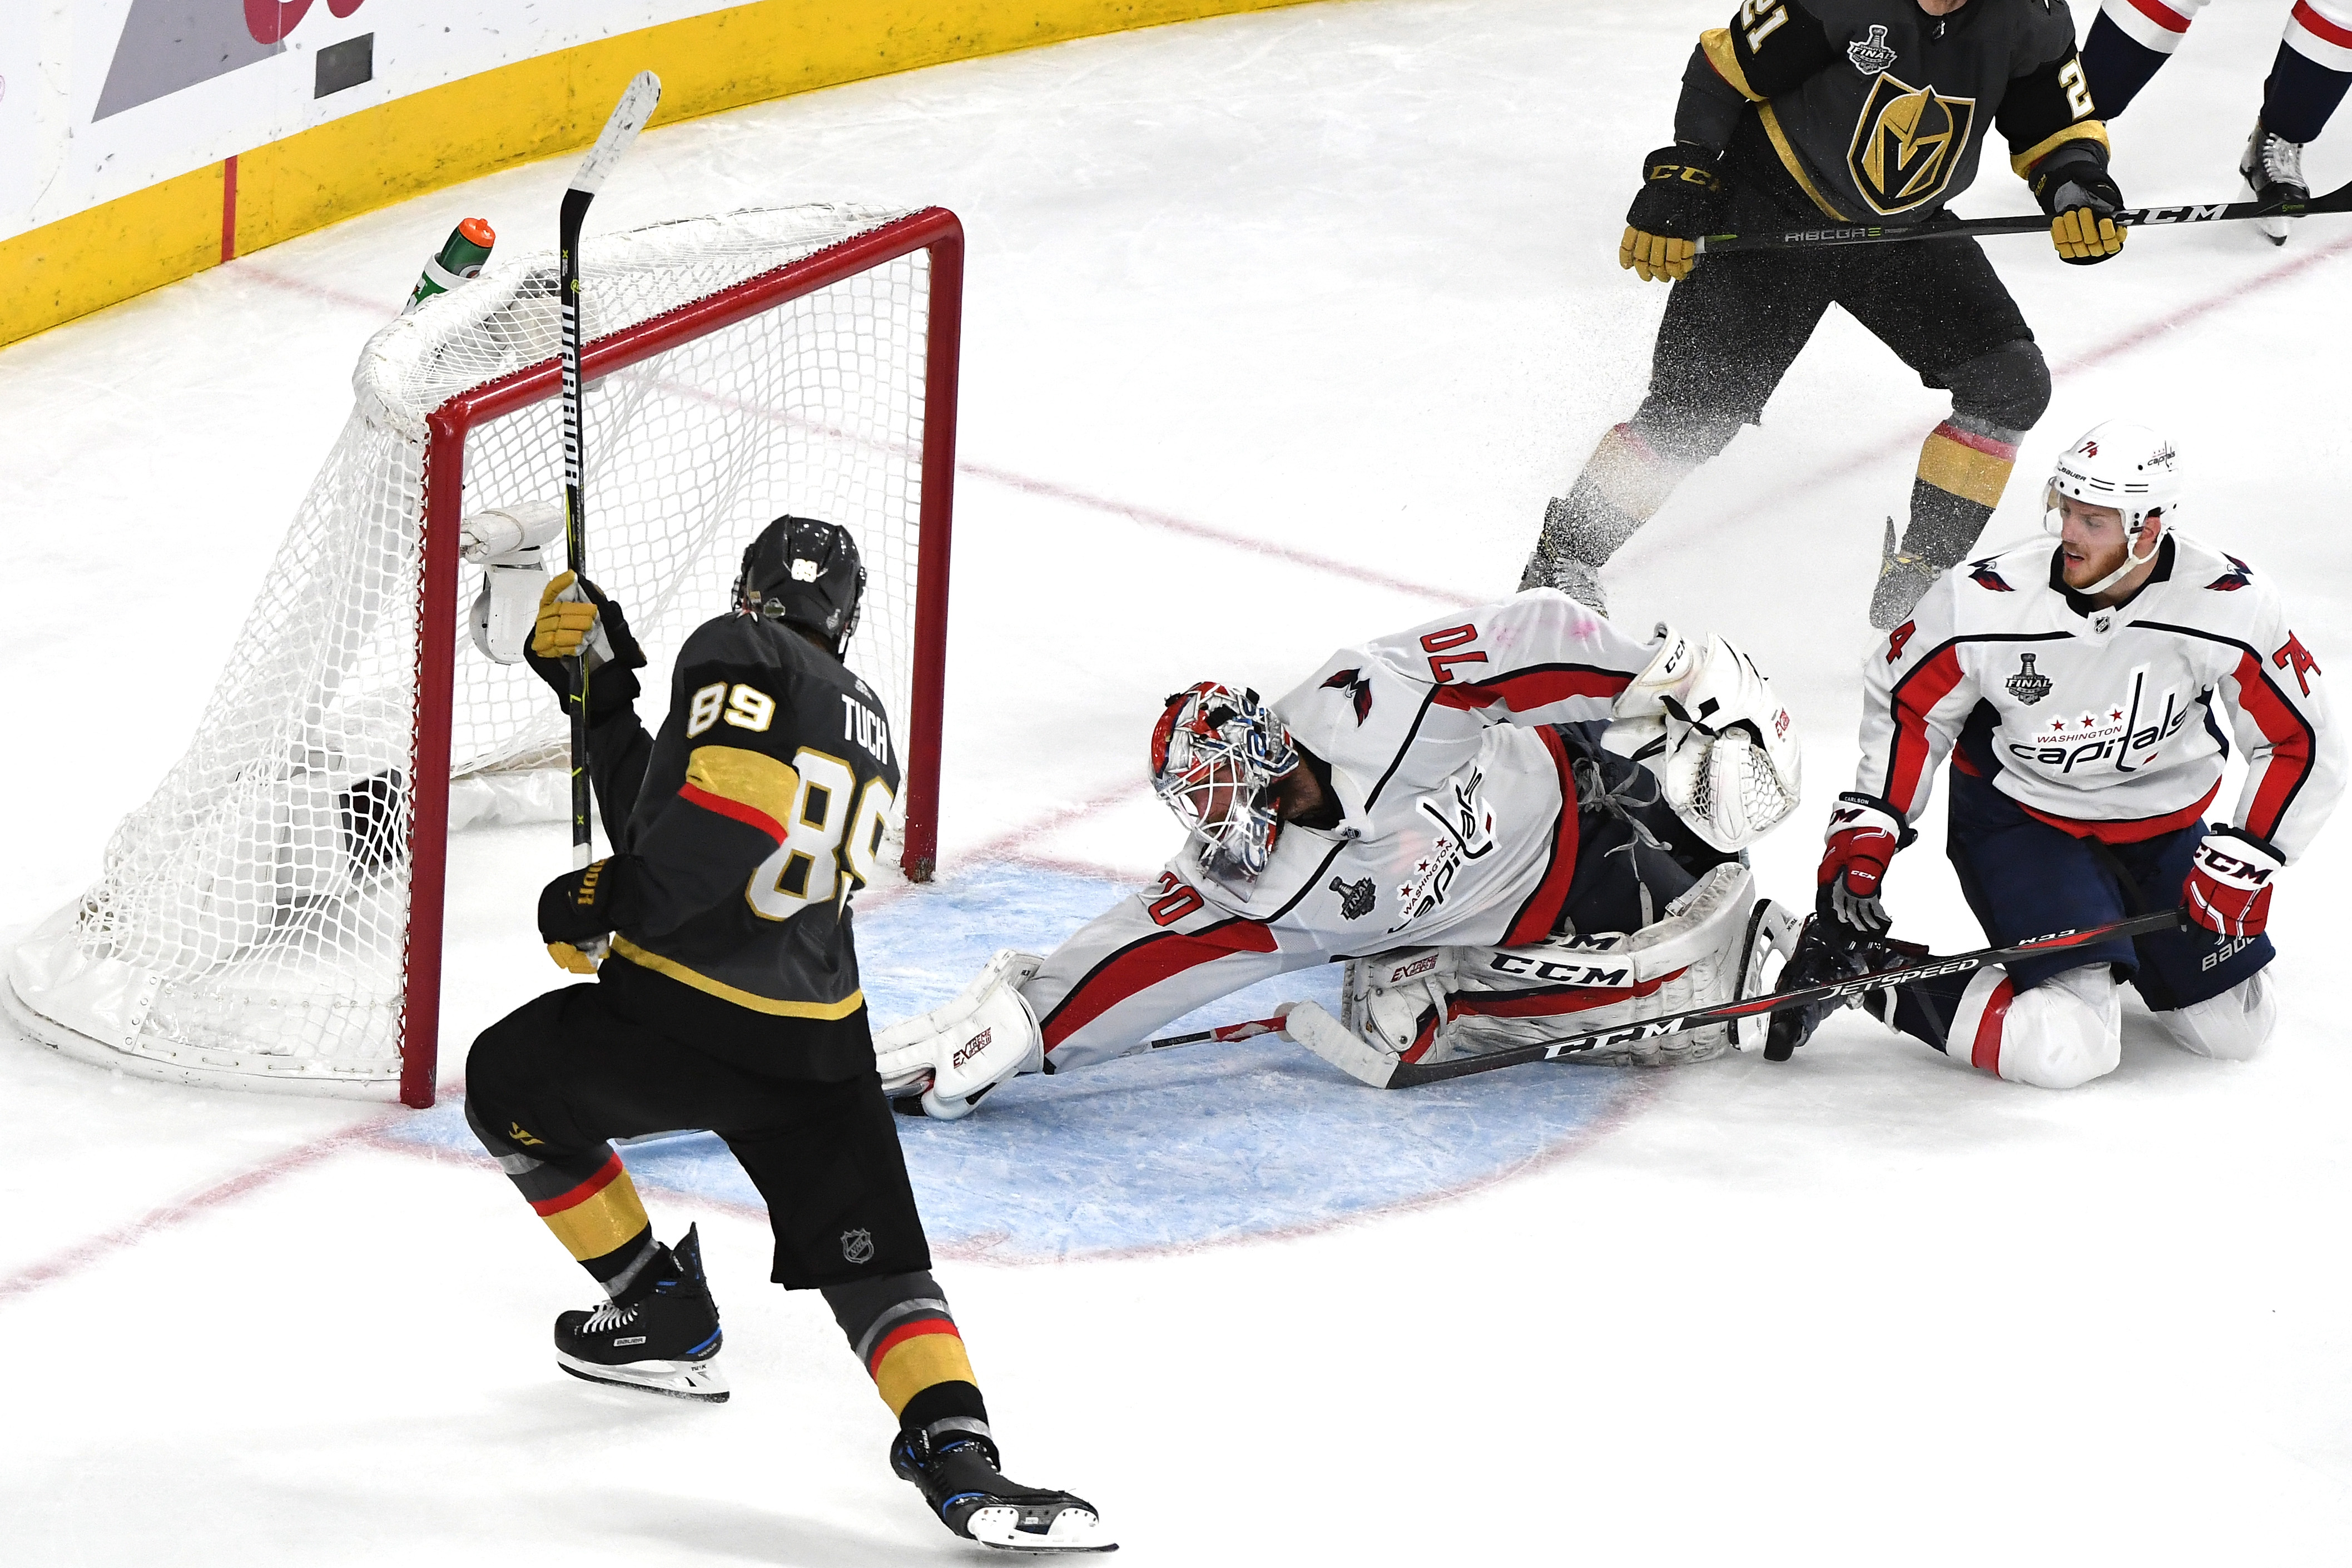 An Amazing Save By Braden Holtby Helps Capitals Tie Stanley Cup Final Series The Boston Globe